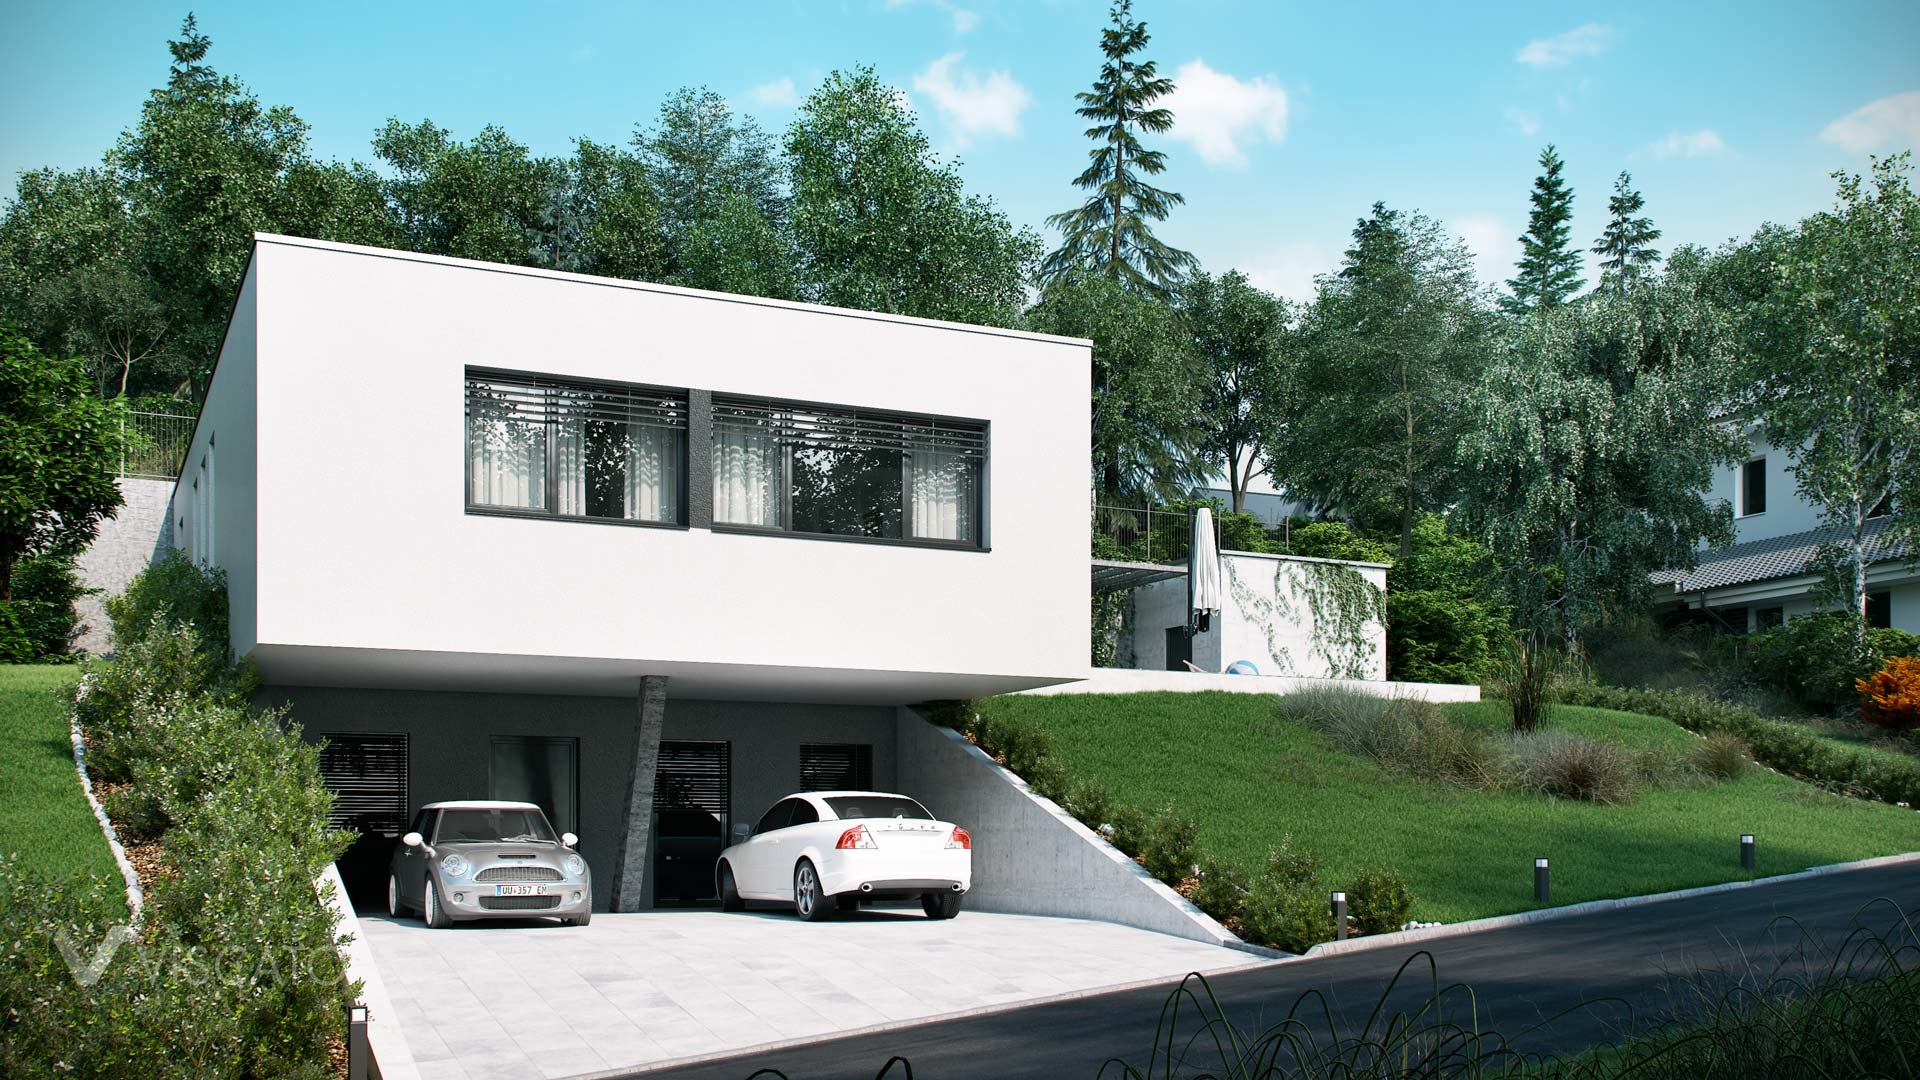 Exterior visualization from Austria with innovative garage design Viscato